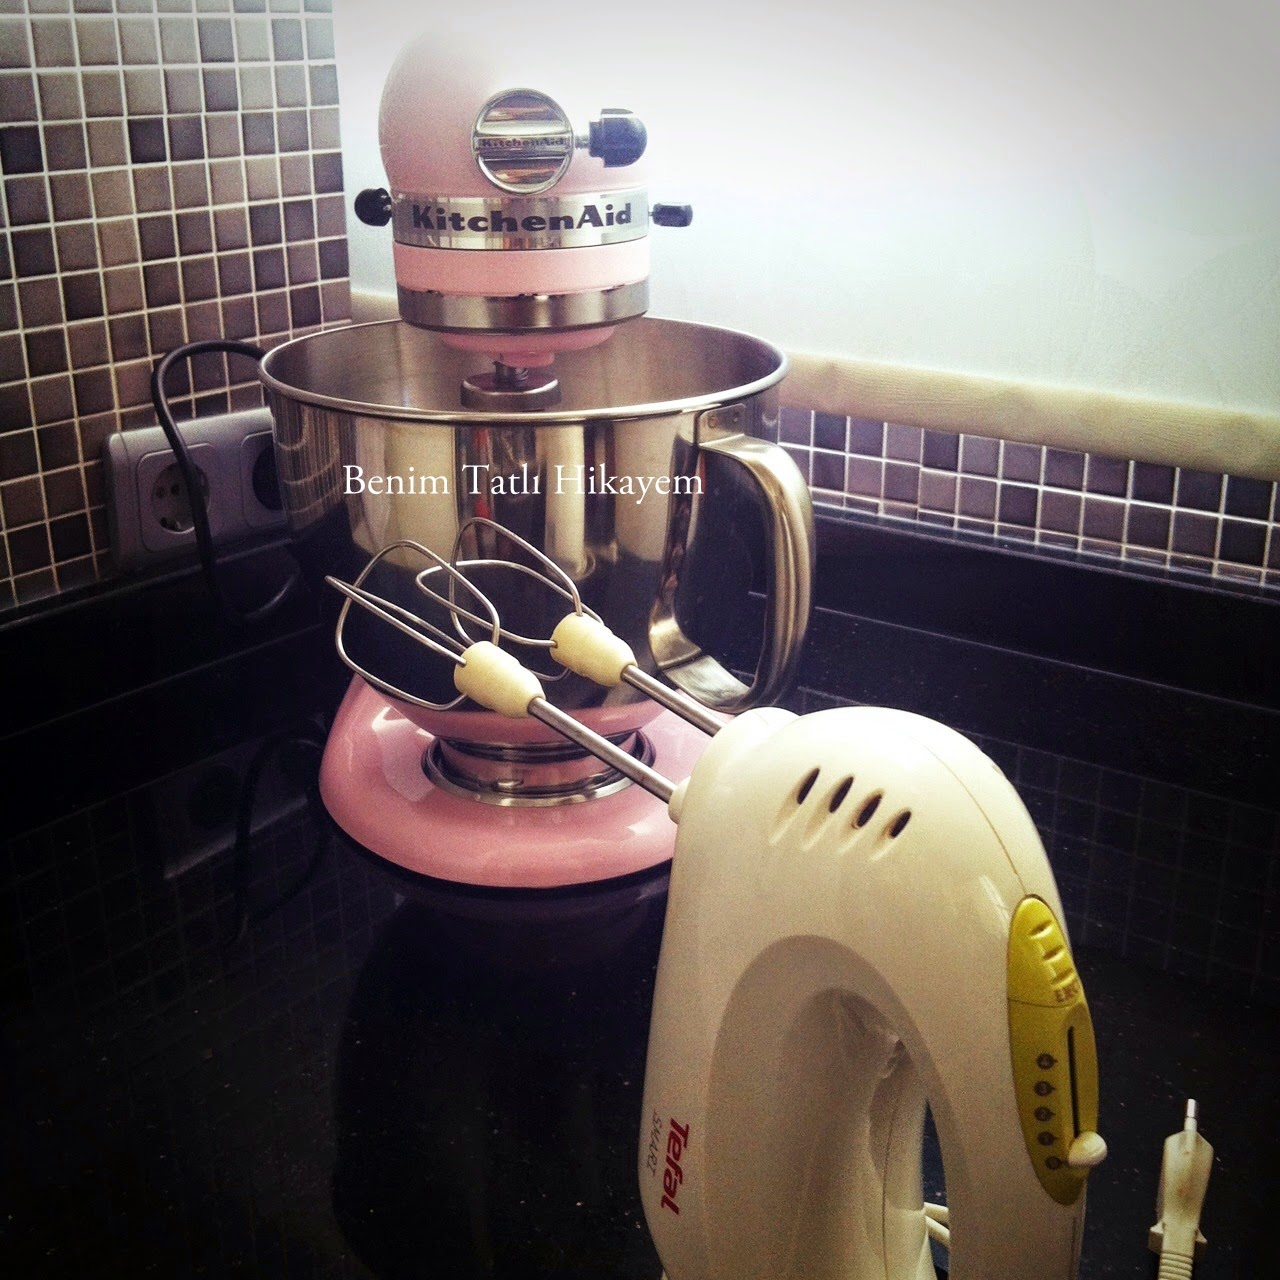 kitchenaid, pembe kitchenaid